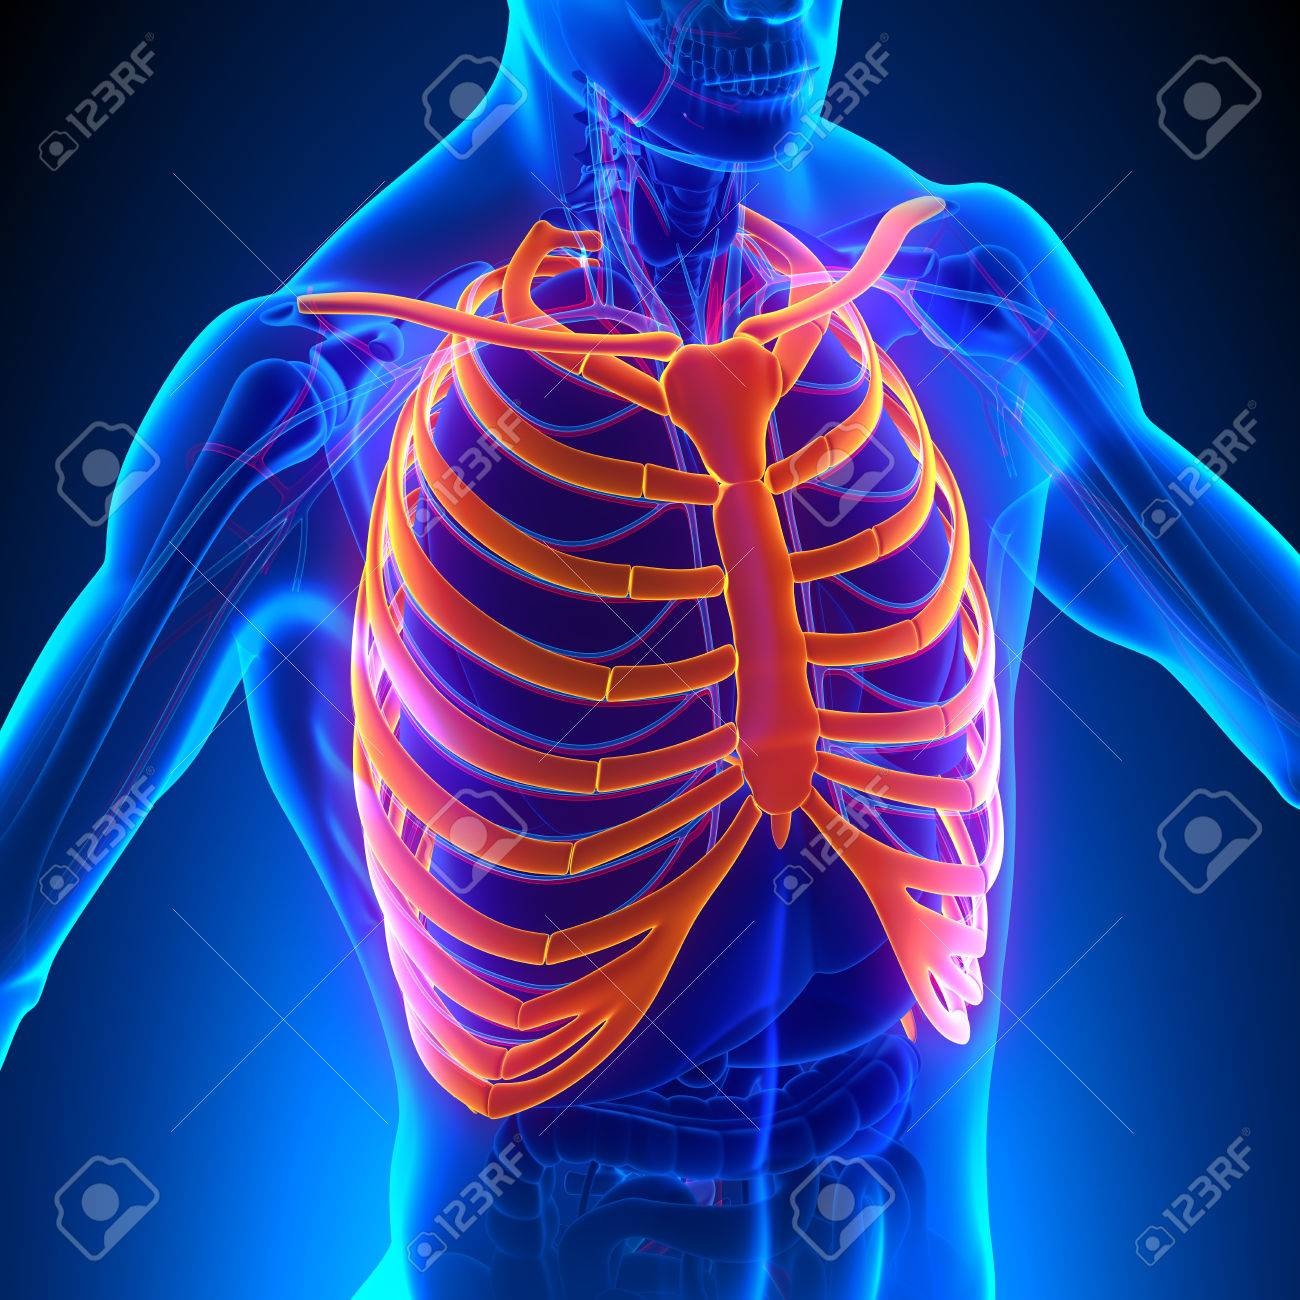 Rib Cage Anatomy Bones With Circulatory System Stock Photo, Picture ...